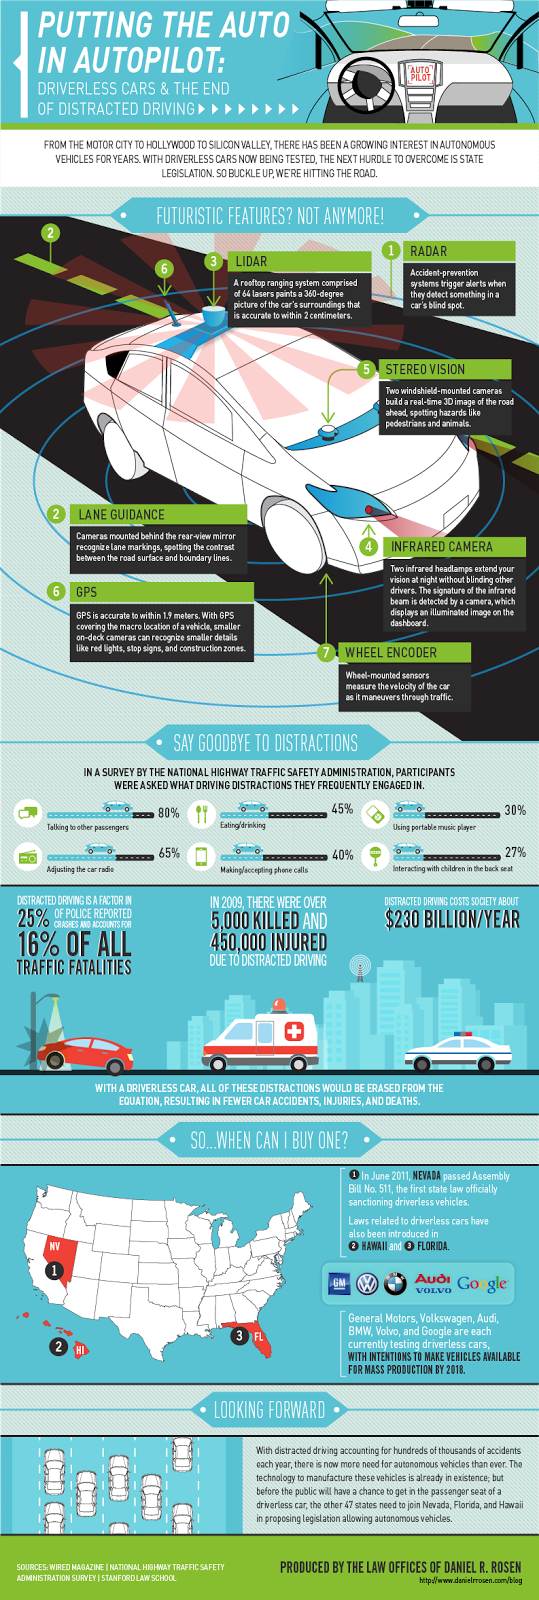 http://mashable.com/2012/02/19/driverless-cars-infographic/